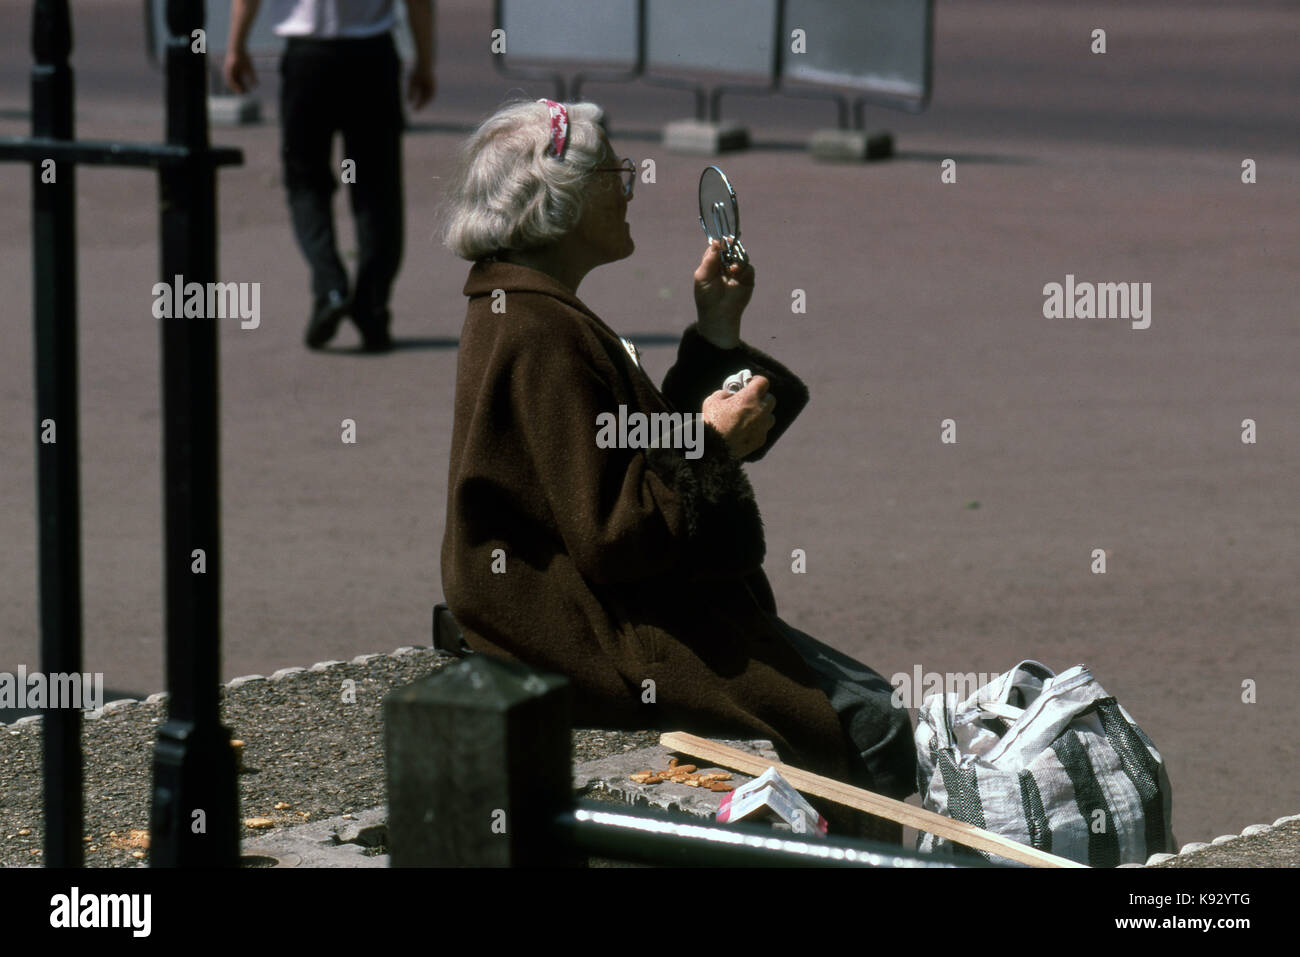 elderly woman outside seated looking at her face with a hand mirror checking her make-up - Stock Image